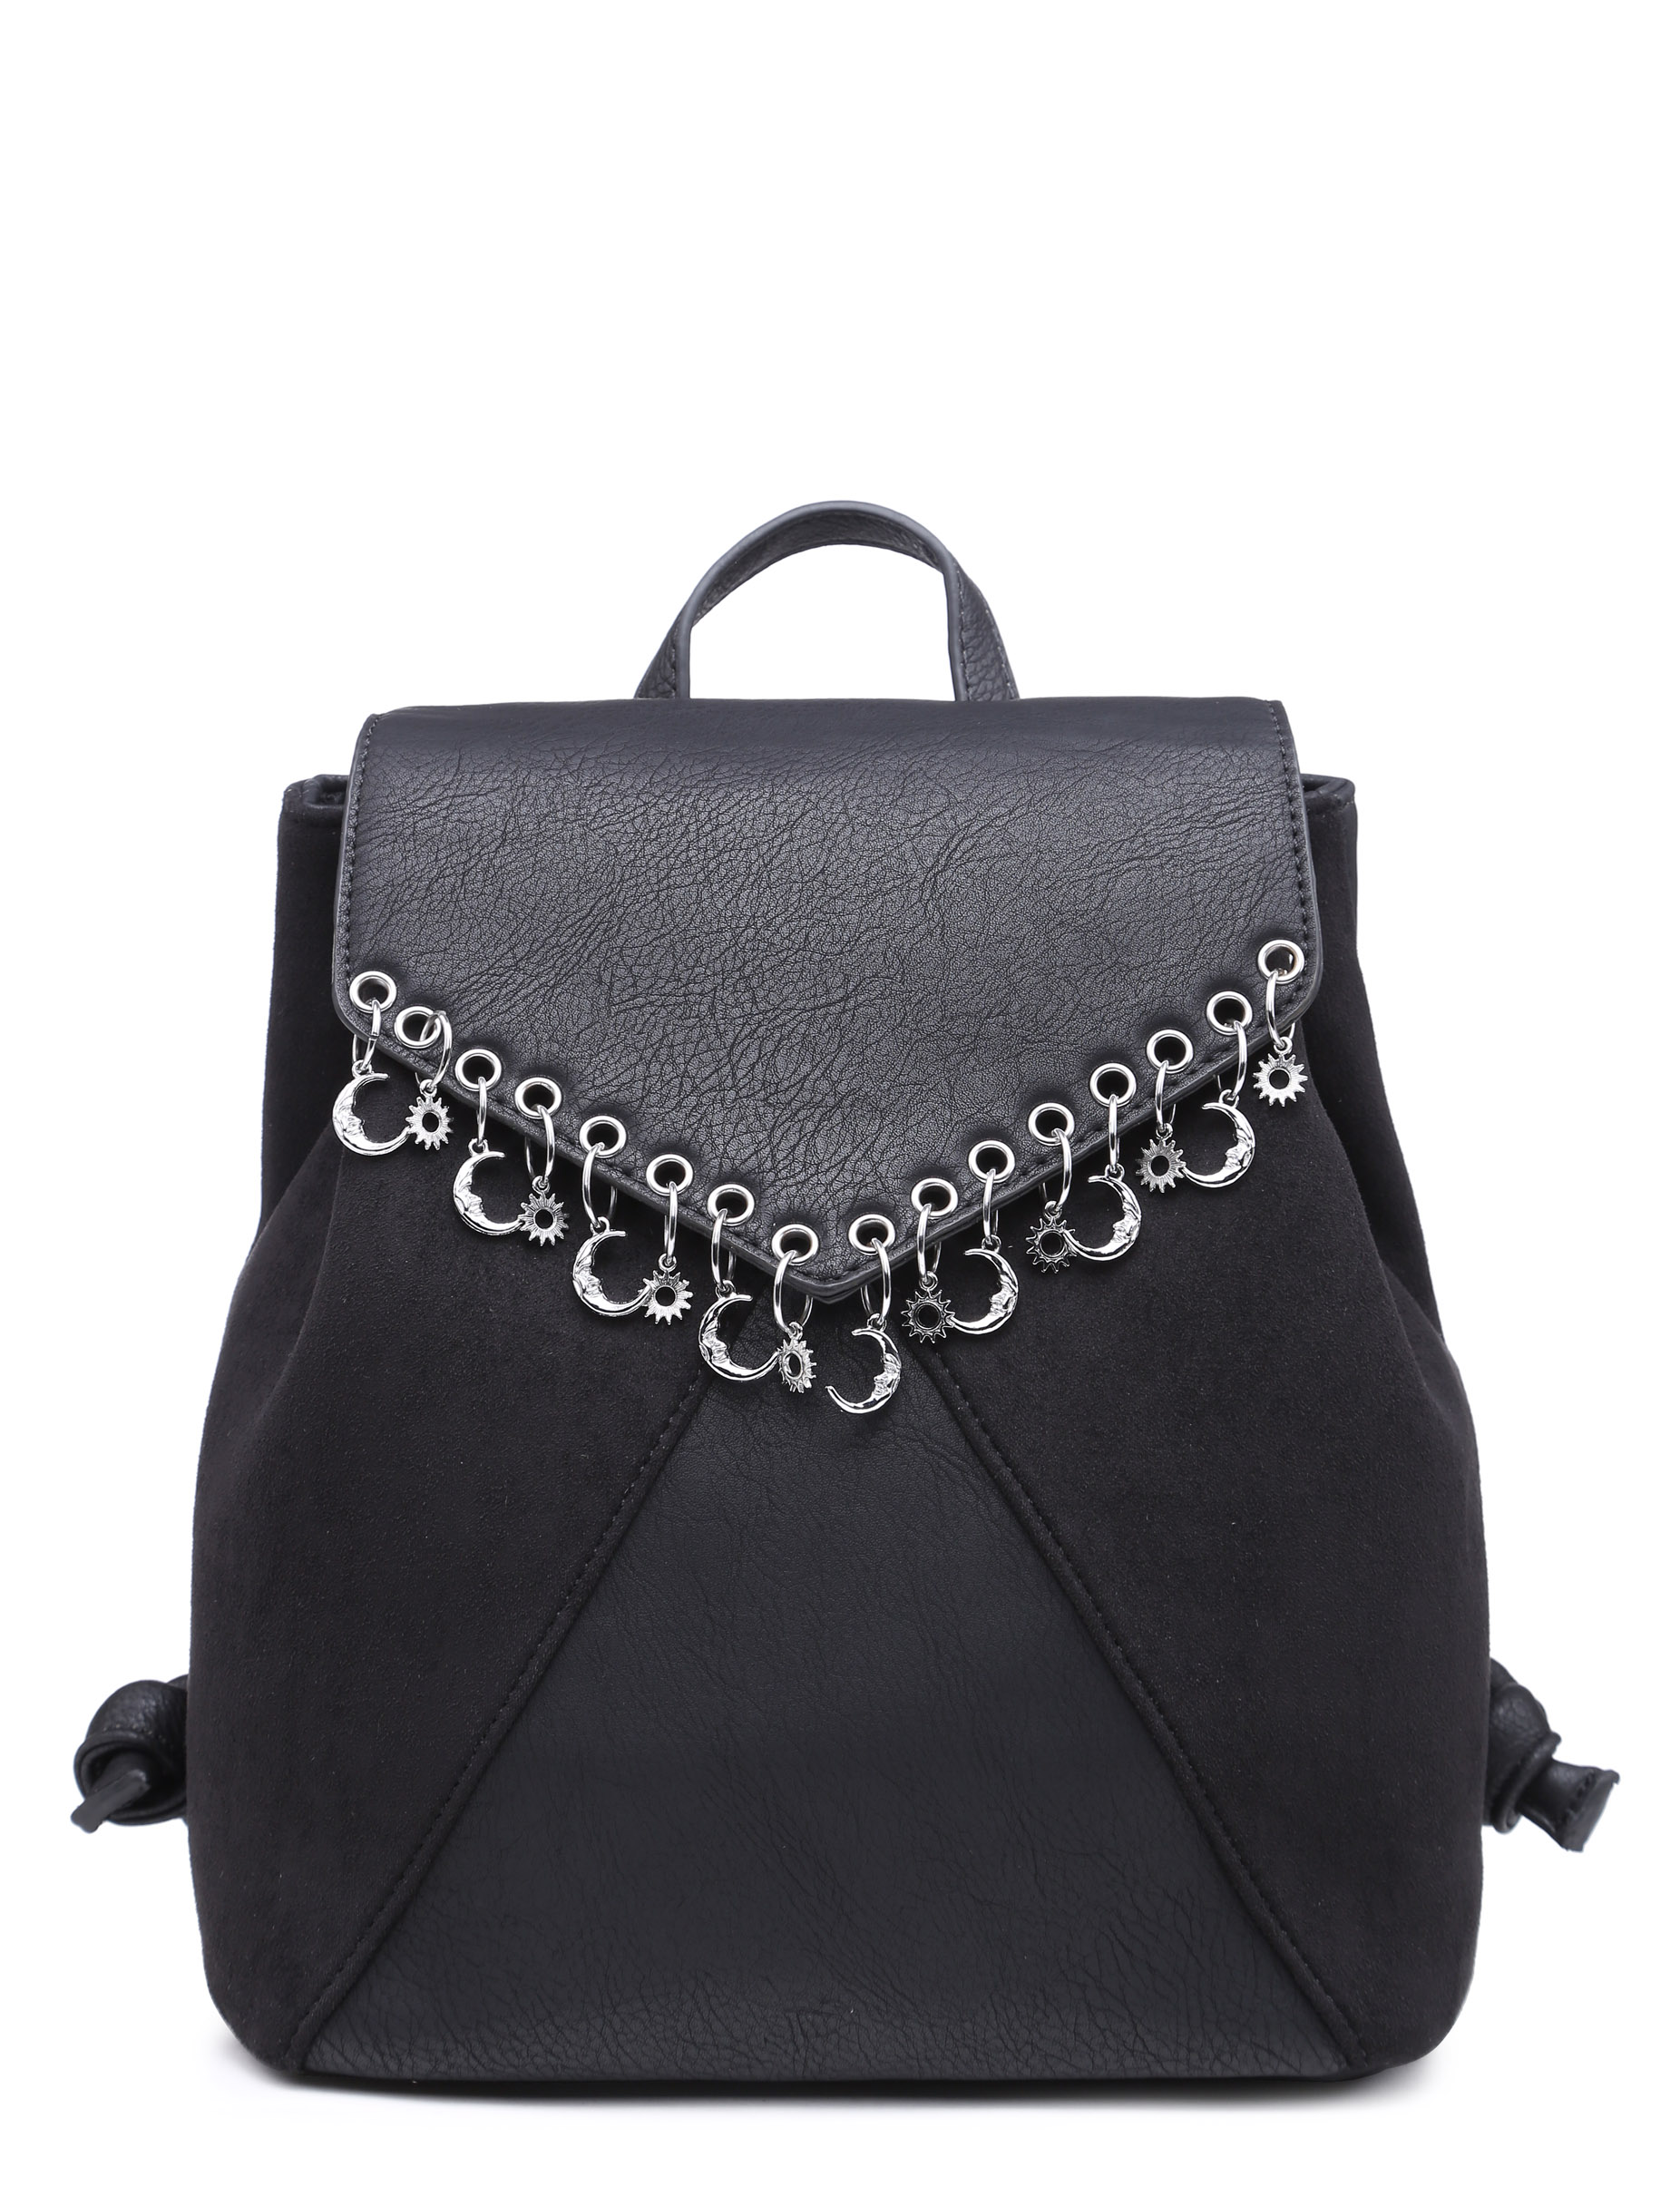 Girls Backpacks - Cool Backpacks & Cute Backpacks | LAMODA